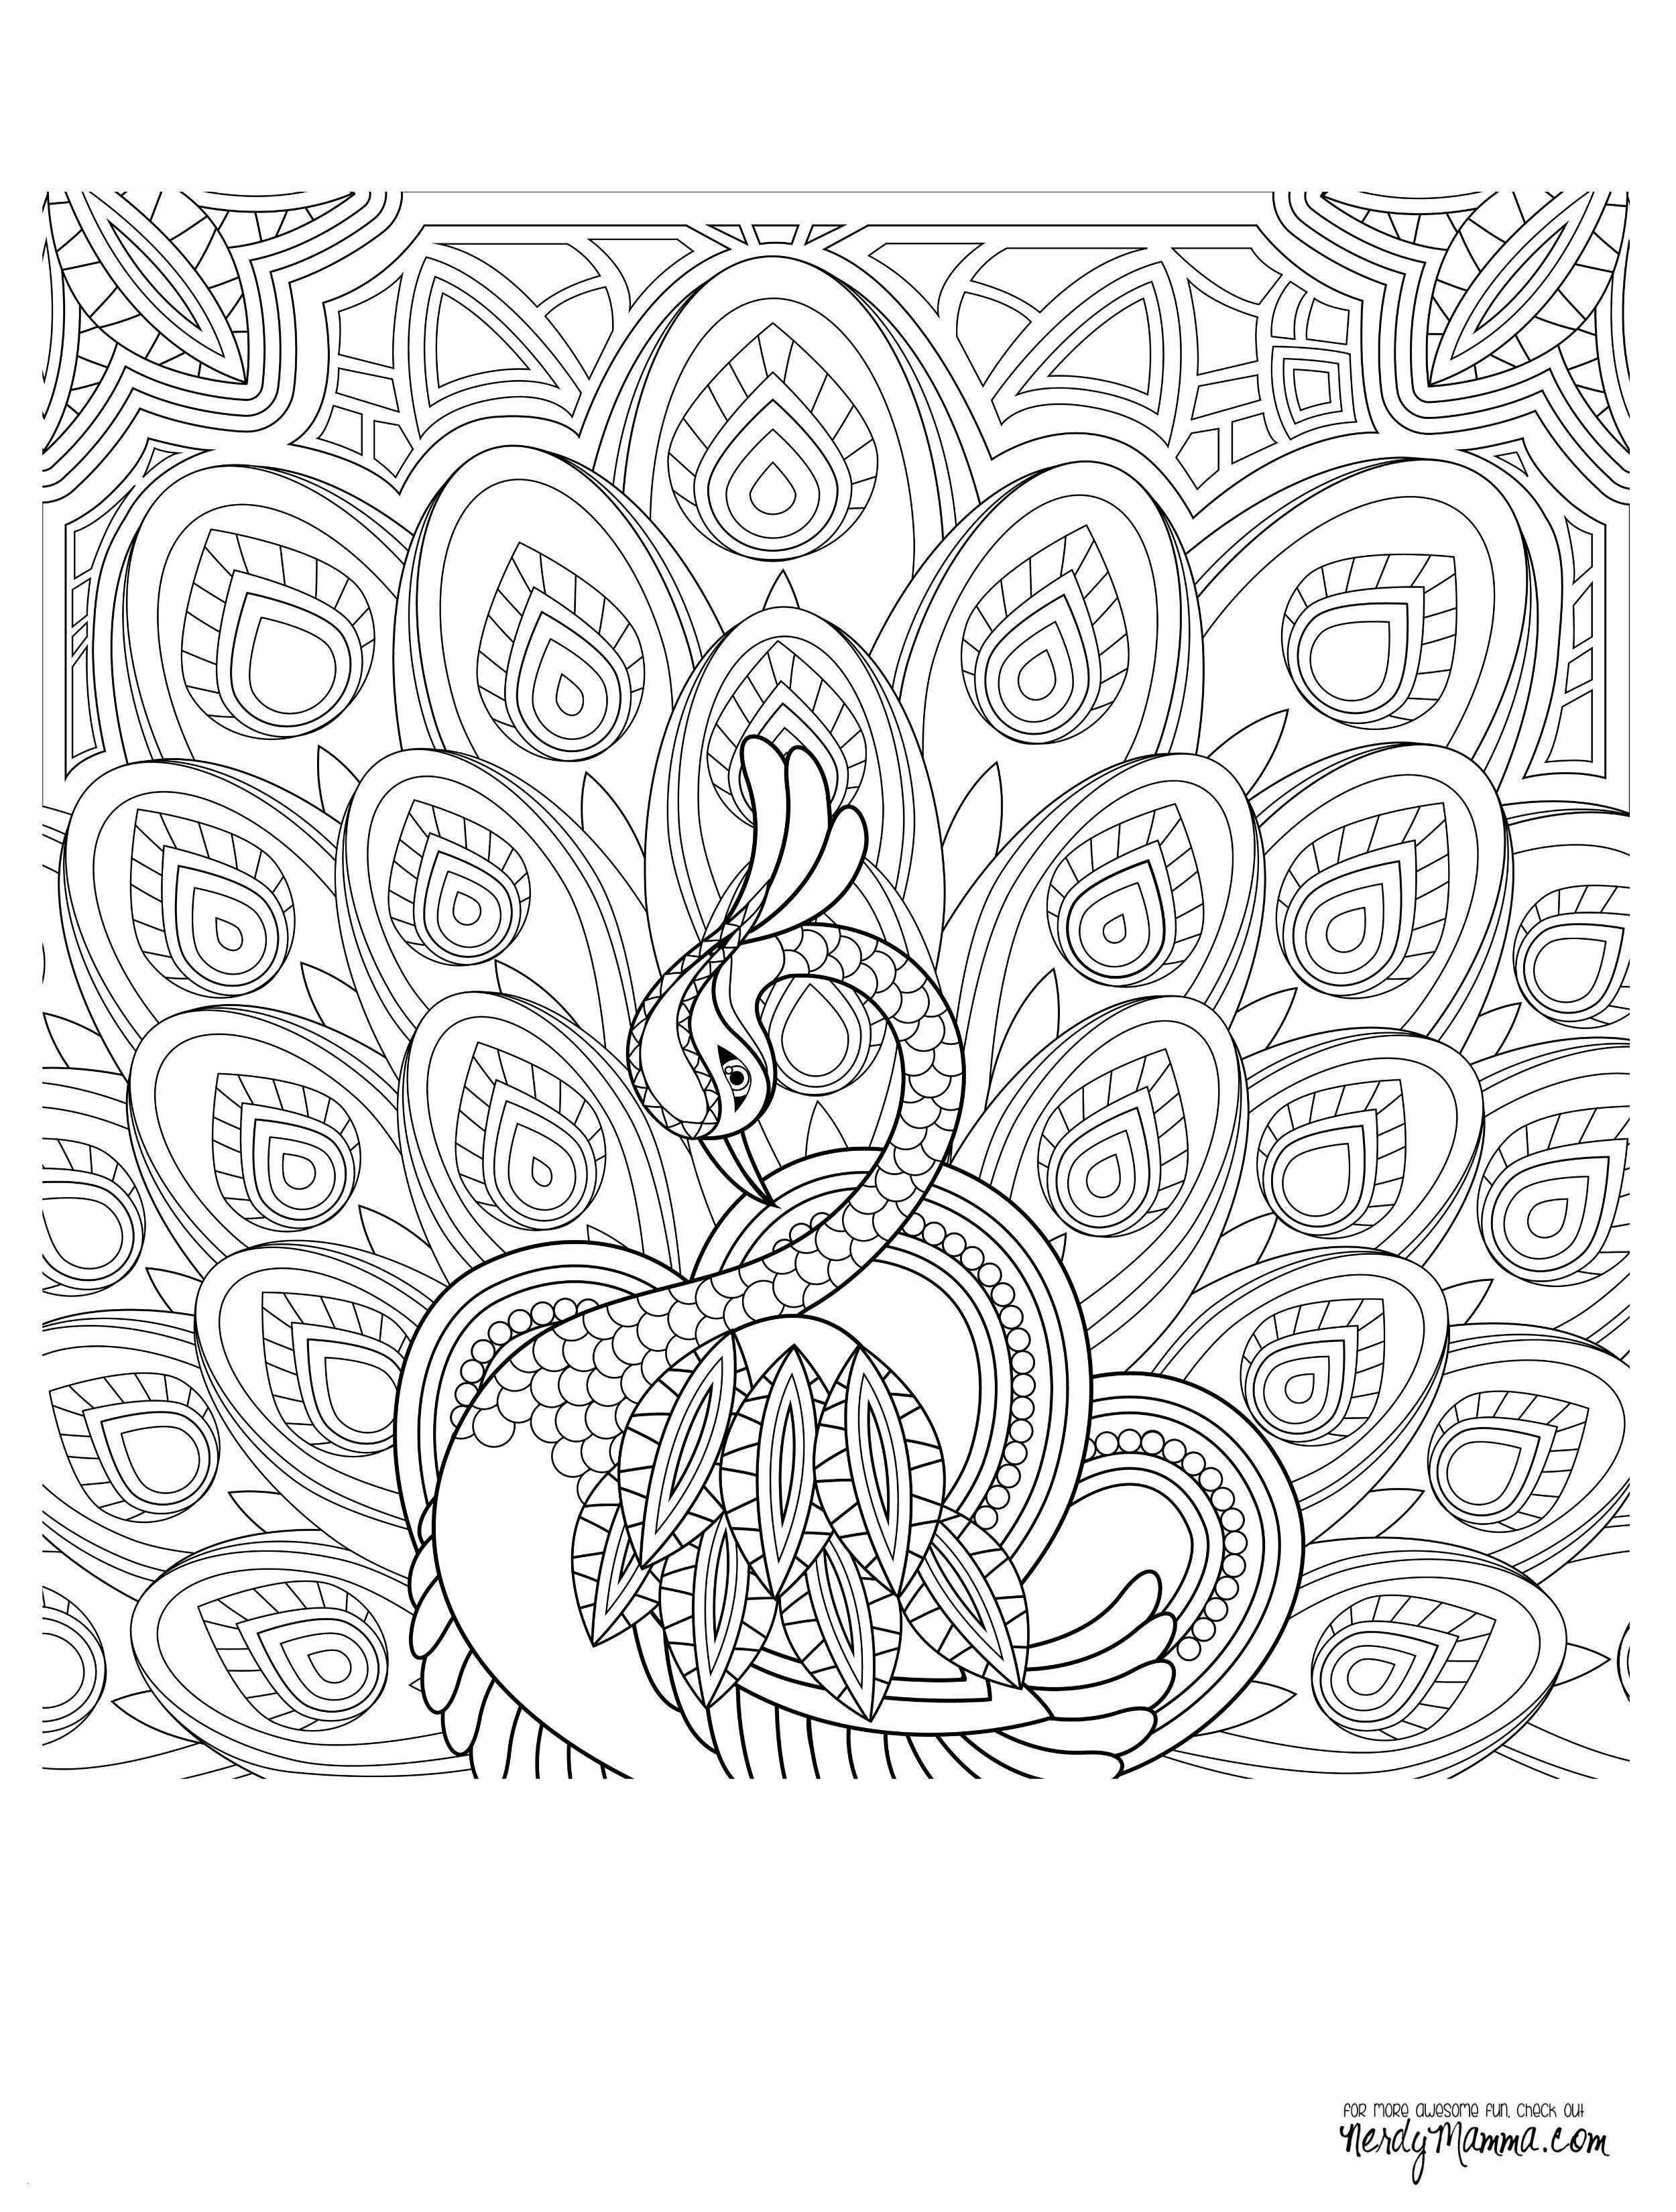 Jumbo Coloring Book Inspirational Coloring Pages for Kides Elegant